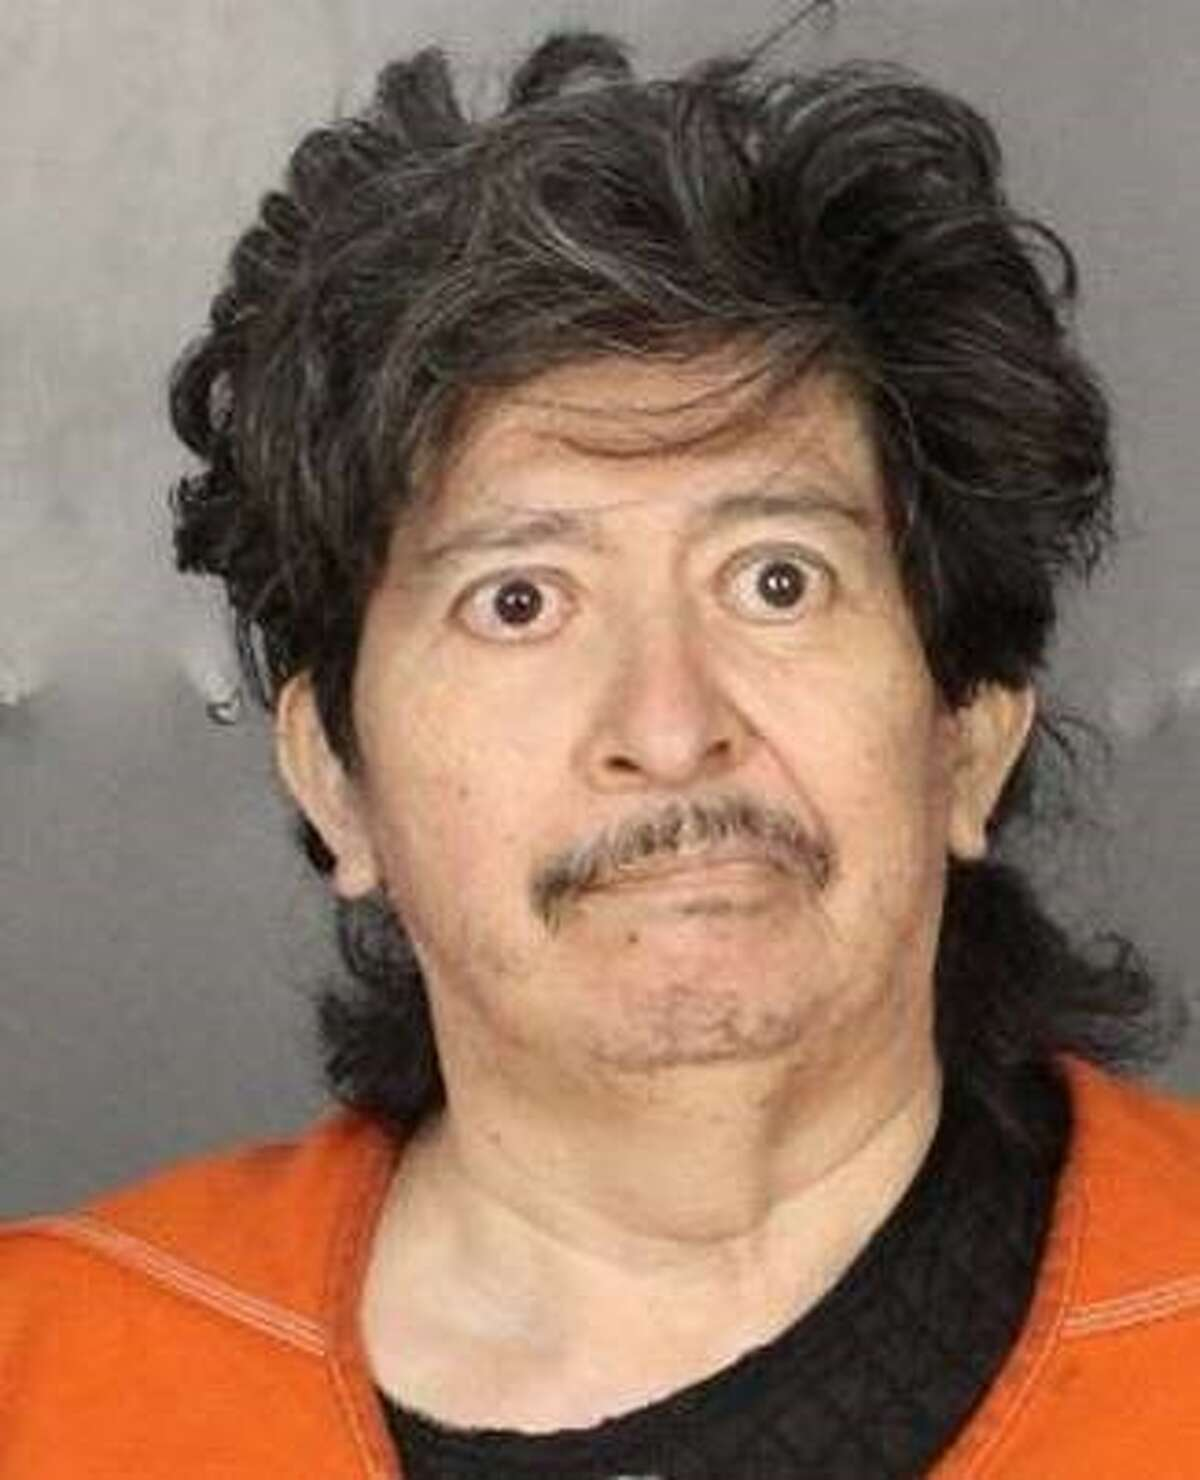 Andy Castillo, 57, is facing charges in the 2003 slaying of 21-year-old Cynthia Joann Palacio from Lubbock.